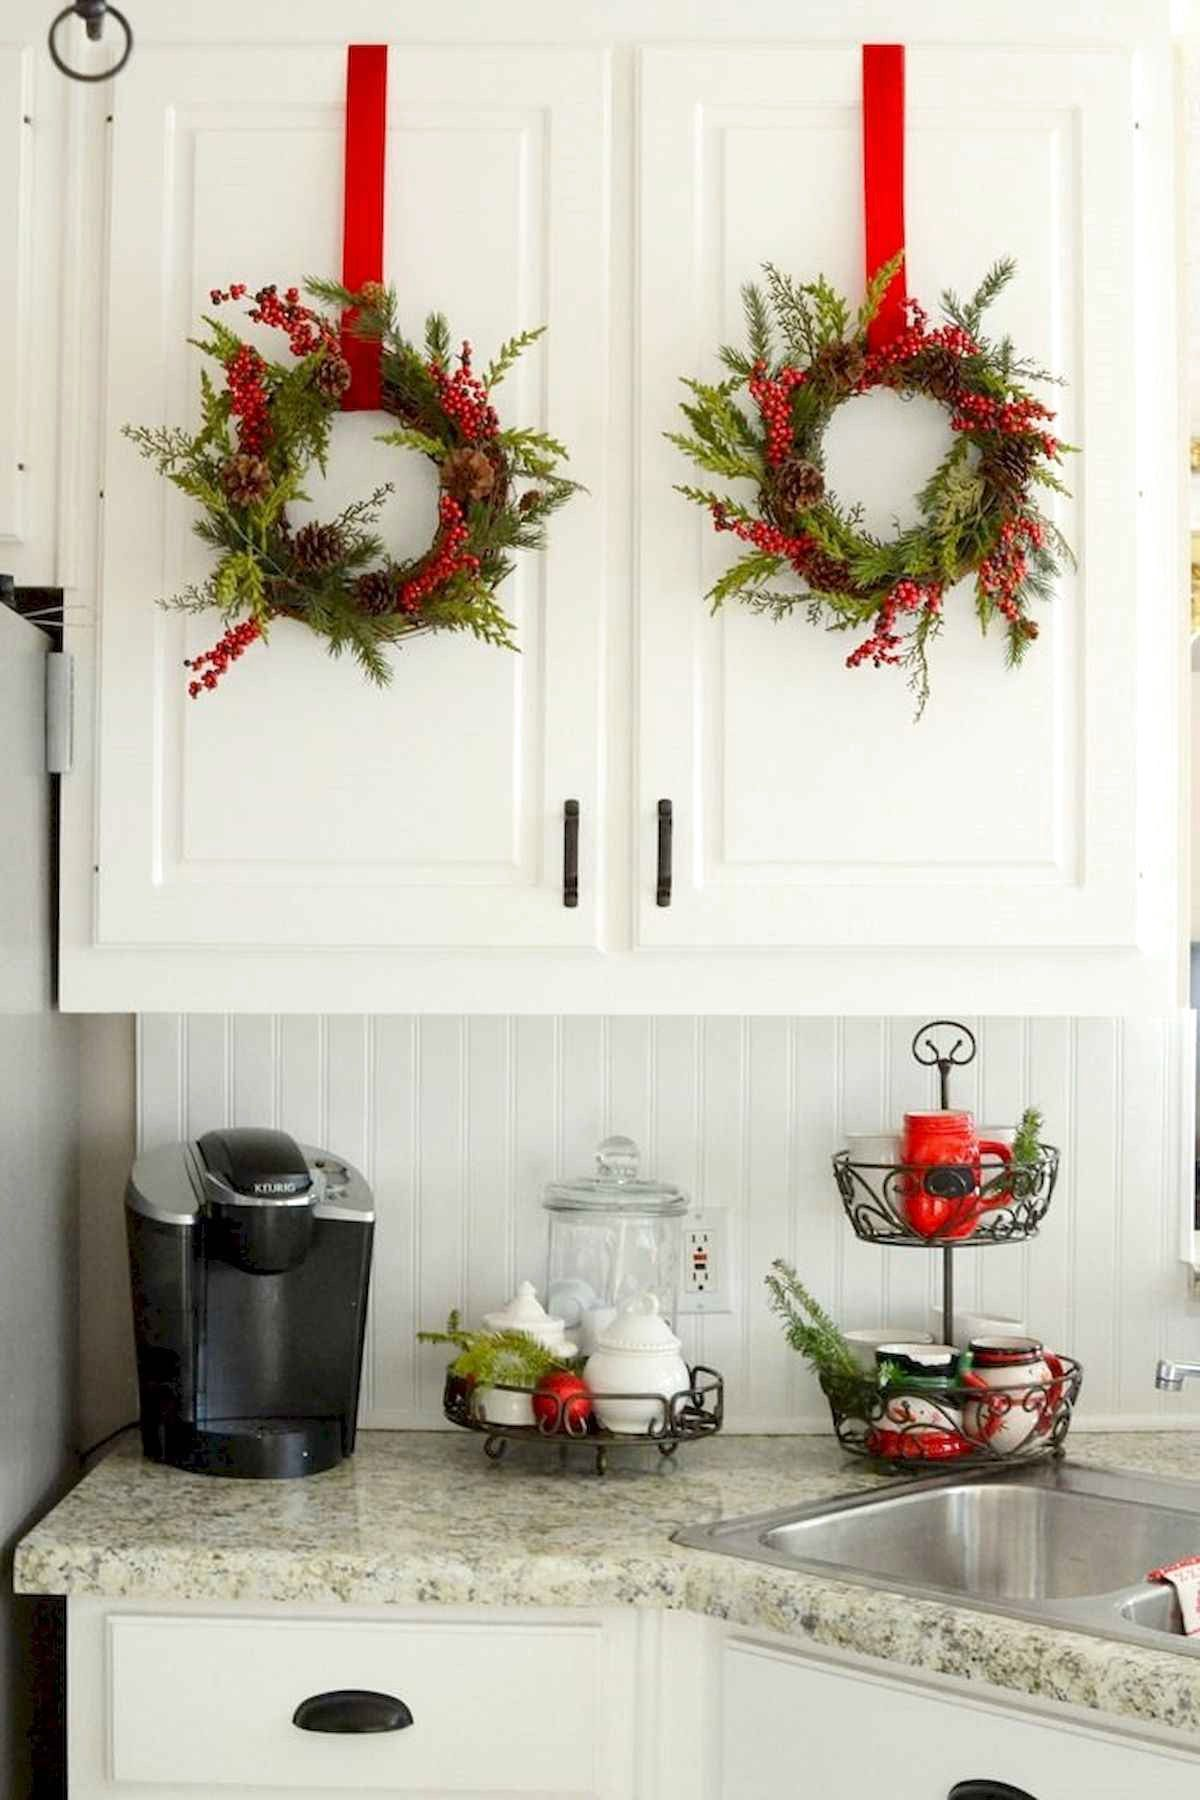 22 Best Christmas Kitchen Decor Ideas And Makeover #ChristmasKitchen #KitchenDecor #KitchenIdeas #Ki #decorationevent